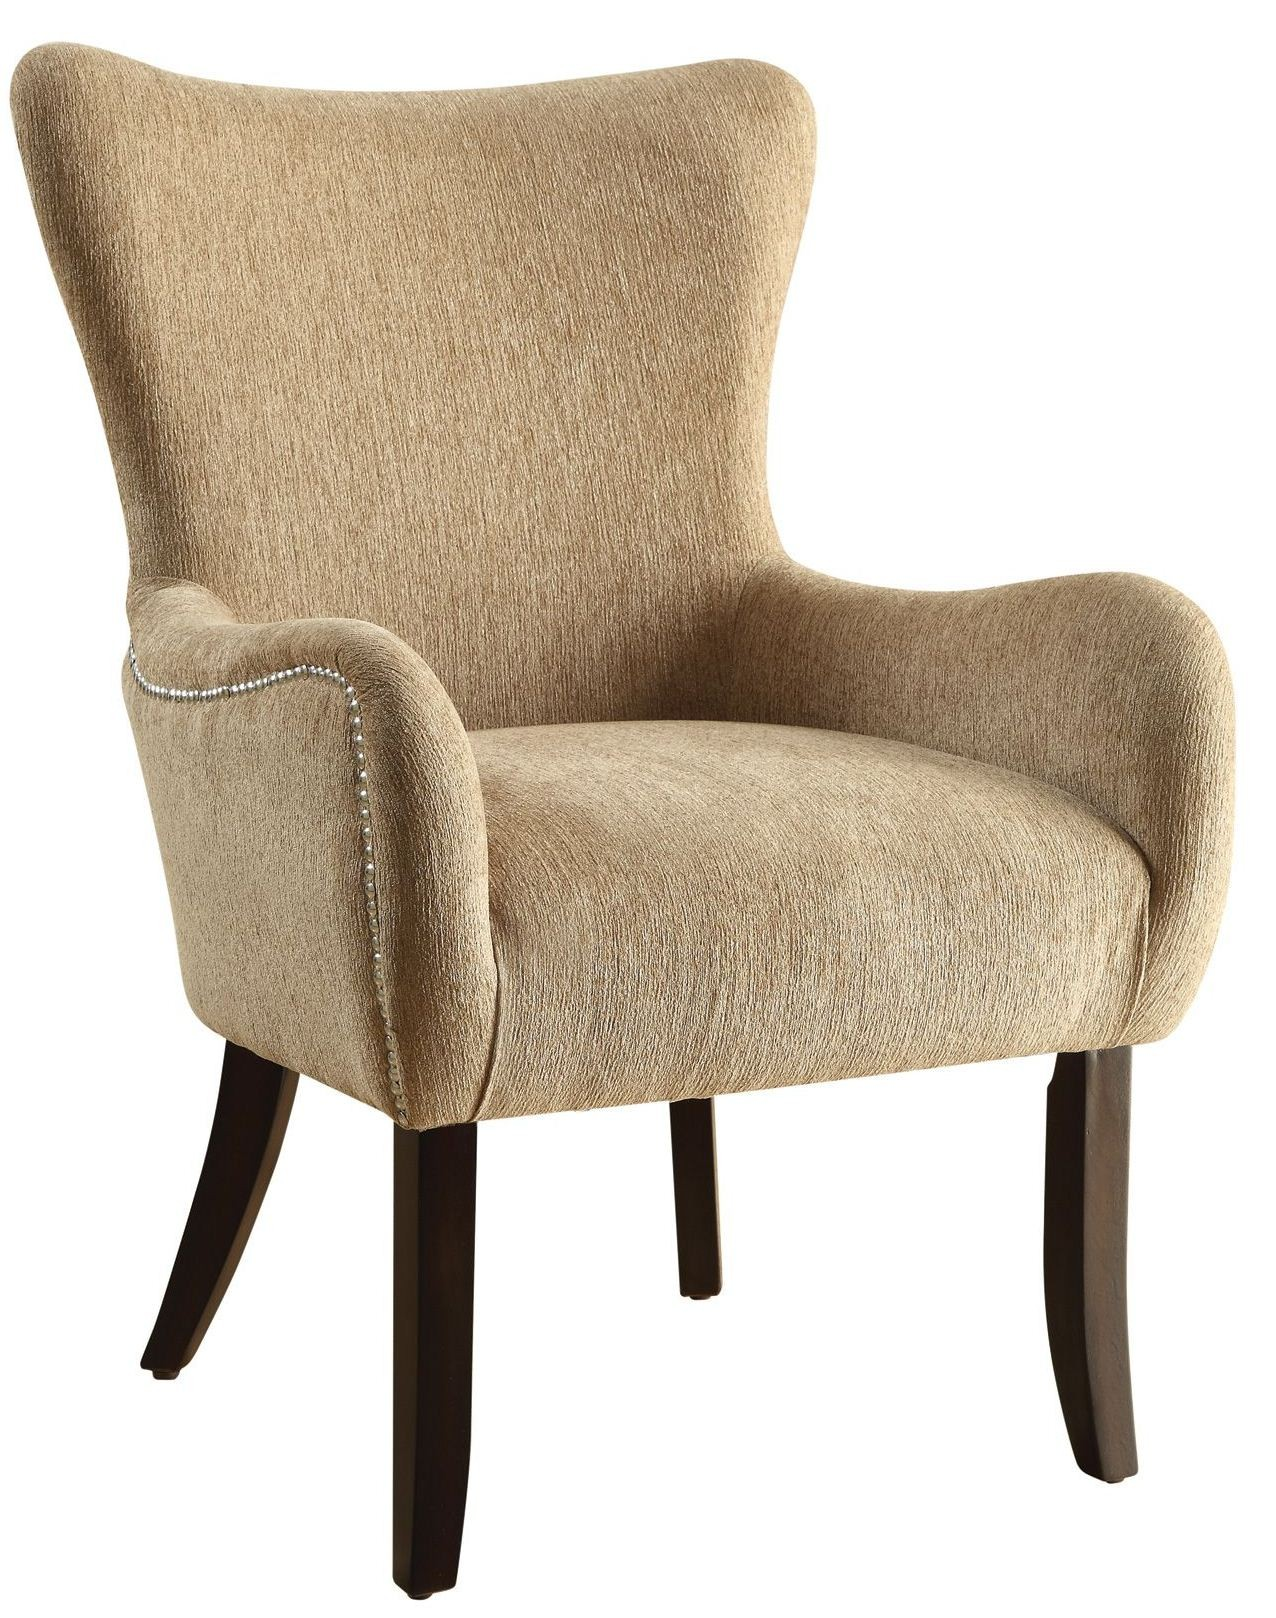 brown accent chairs folding chair parts 902503 from coaster coleman